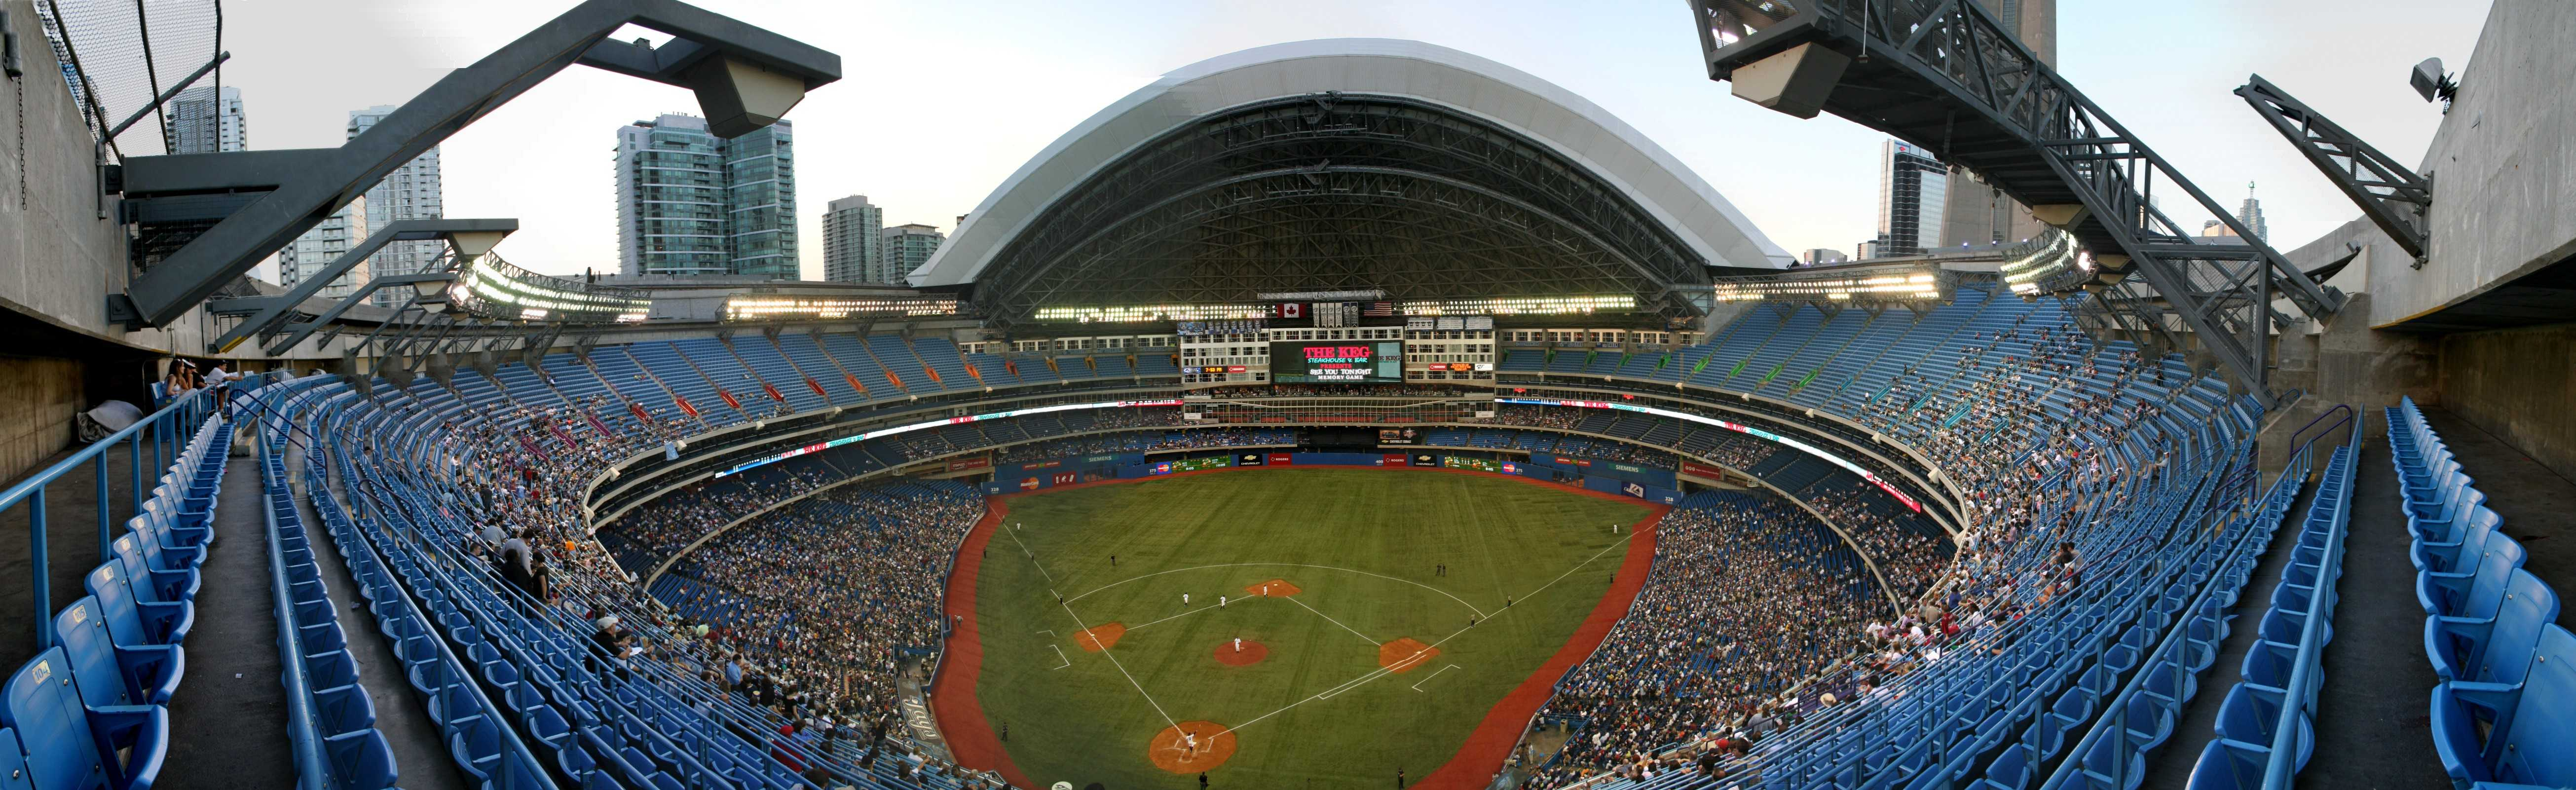 Rogers Centre Skydome Hotel Toronto